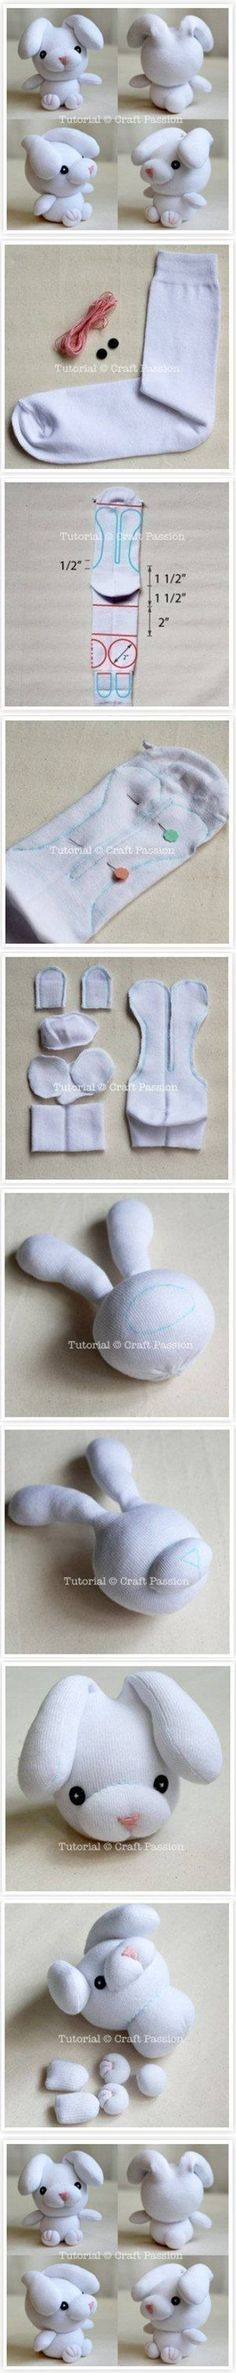 Learn to Sew One Step at a Time